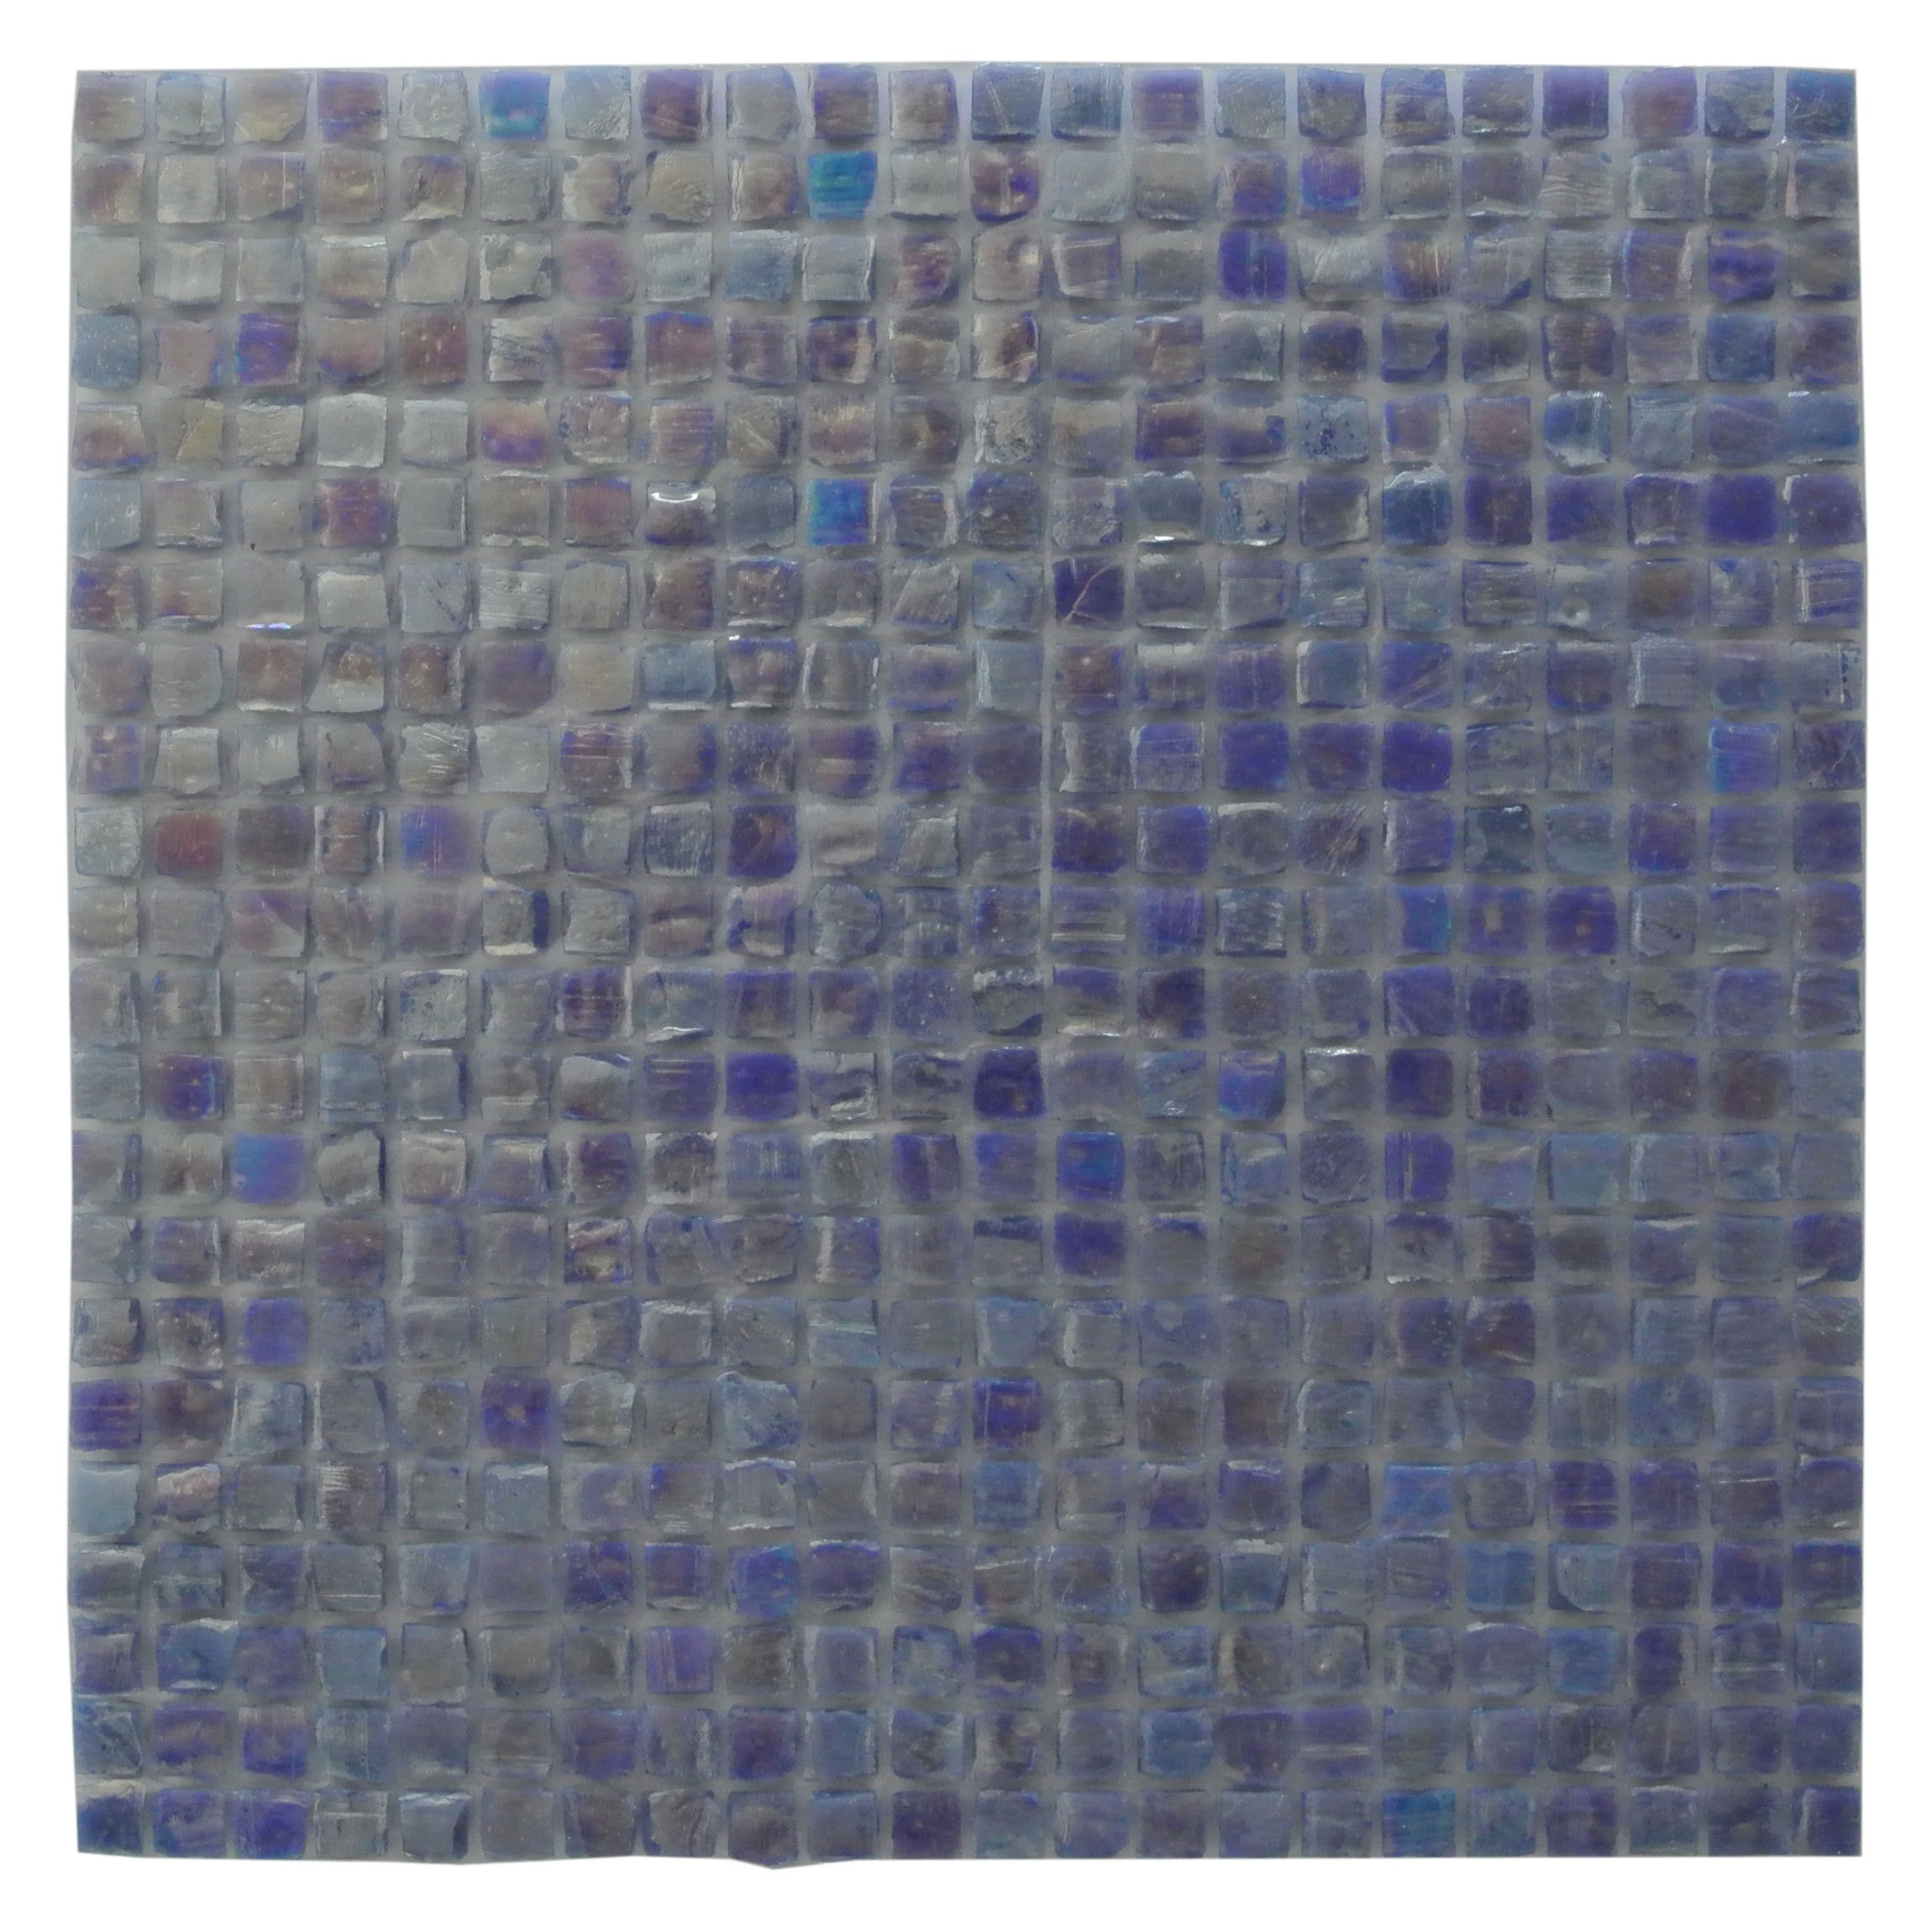 Ecologic 0.375 in x 0.375 in Glass Square Mosaic in VIOLET Glossy